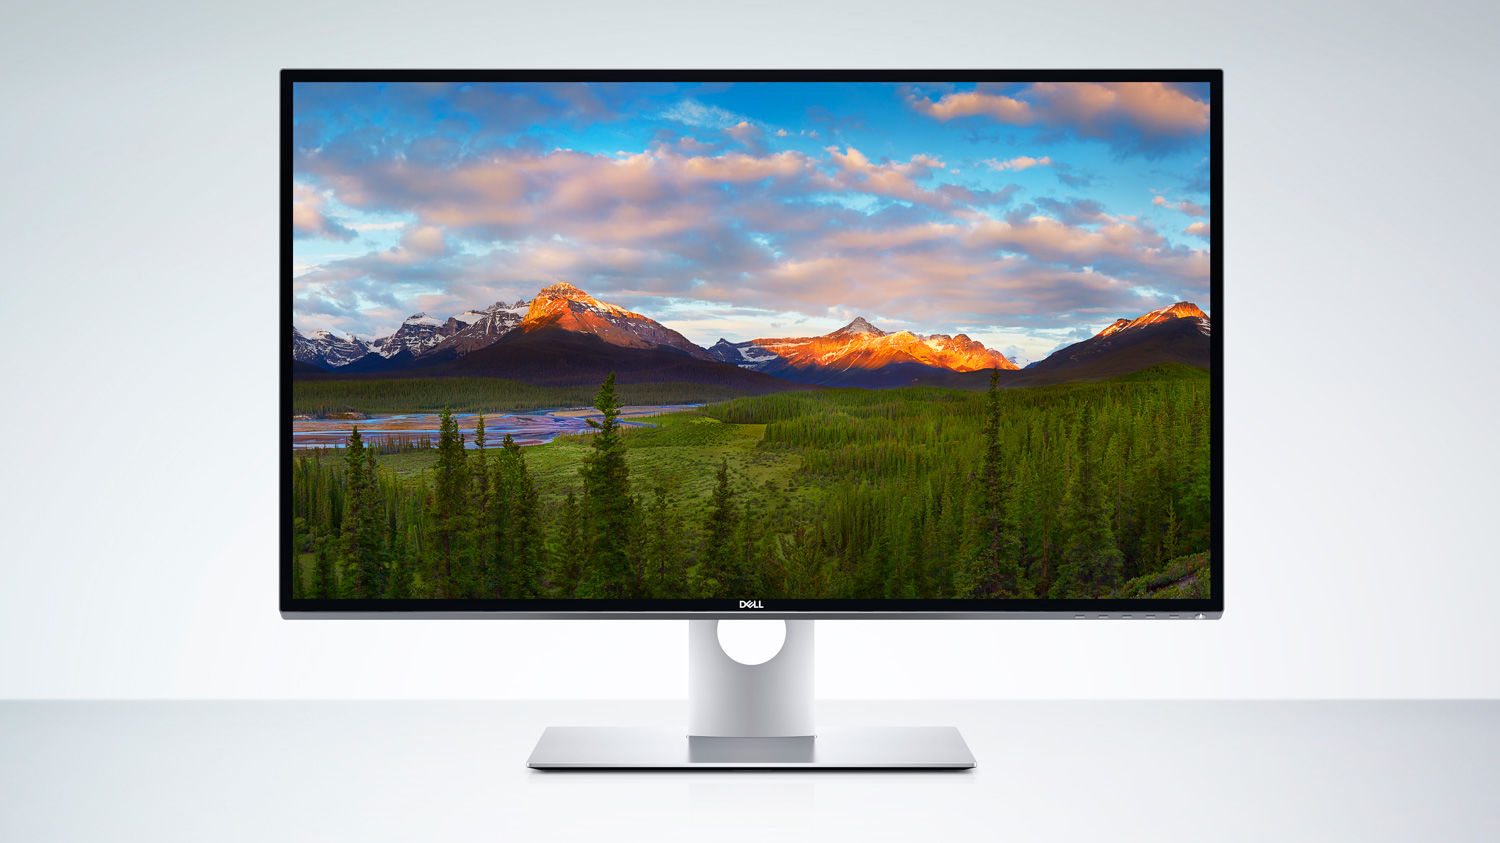 Dell UltraSharp 8k Monitor